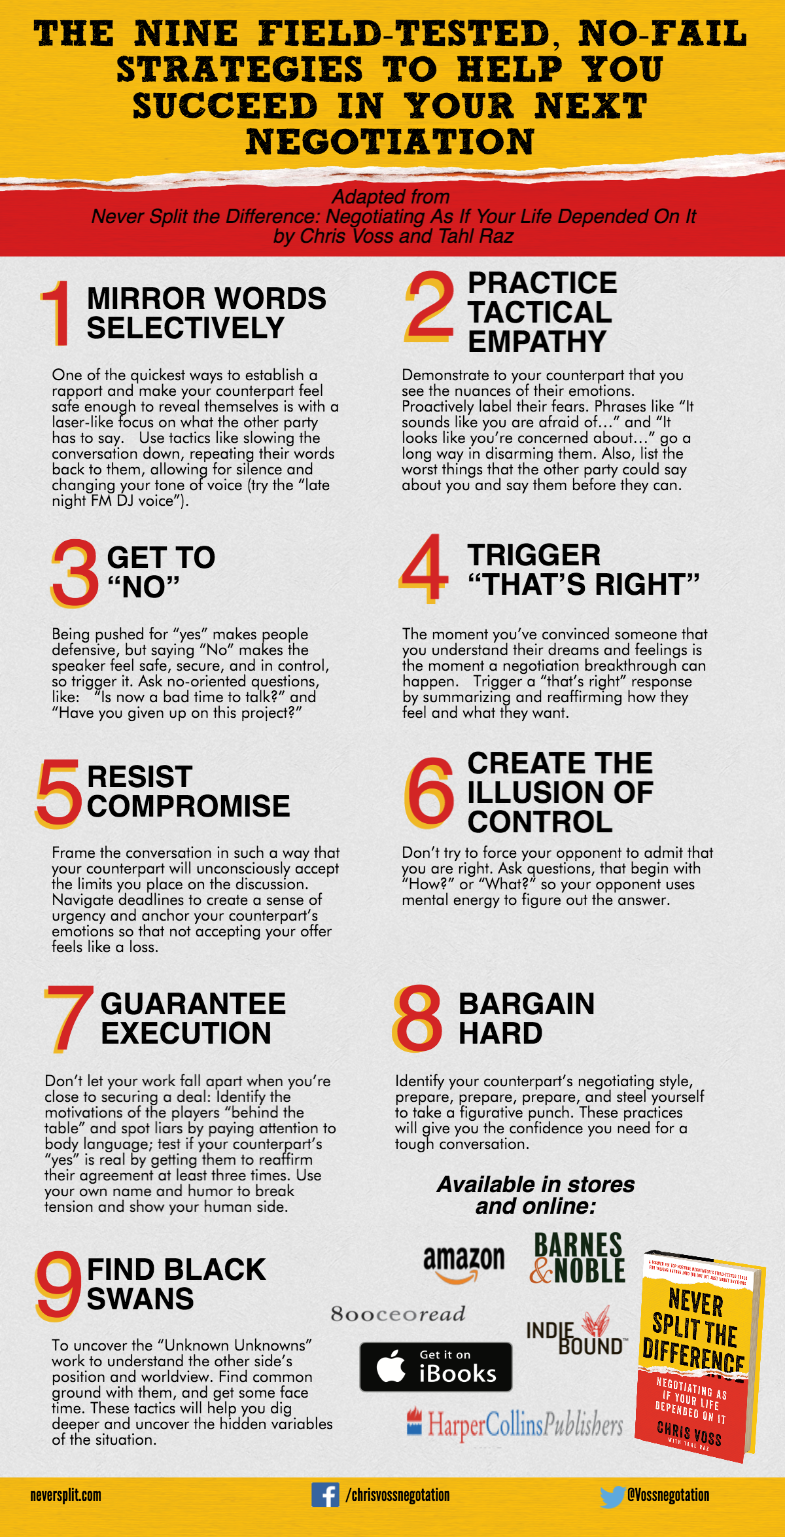 Worksheets Negotiation Worksheet the 9 field tested no fail strategies to help you succeed in your chris voss shares for negotiation success from his book never split difference negotiating as if life depen